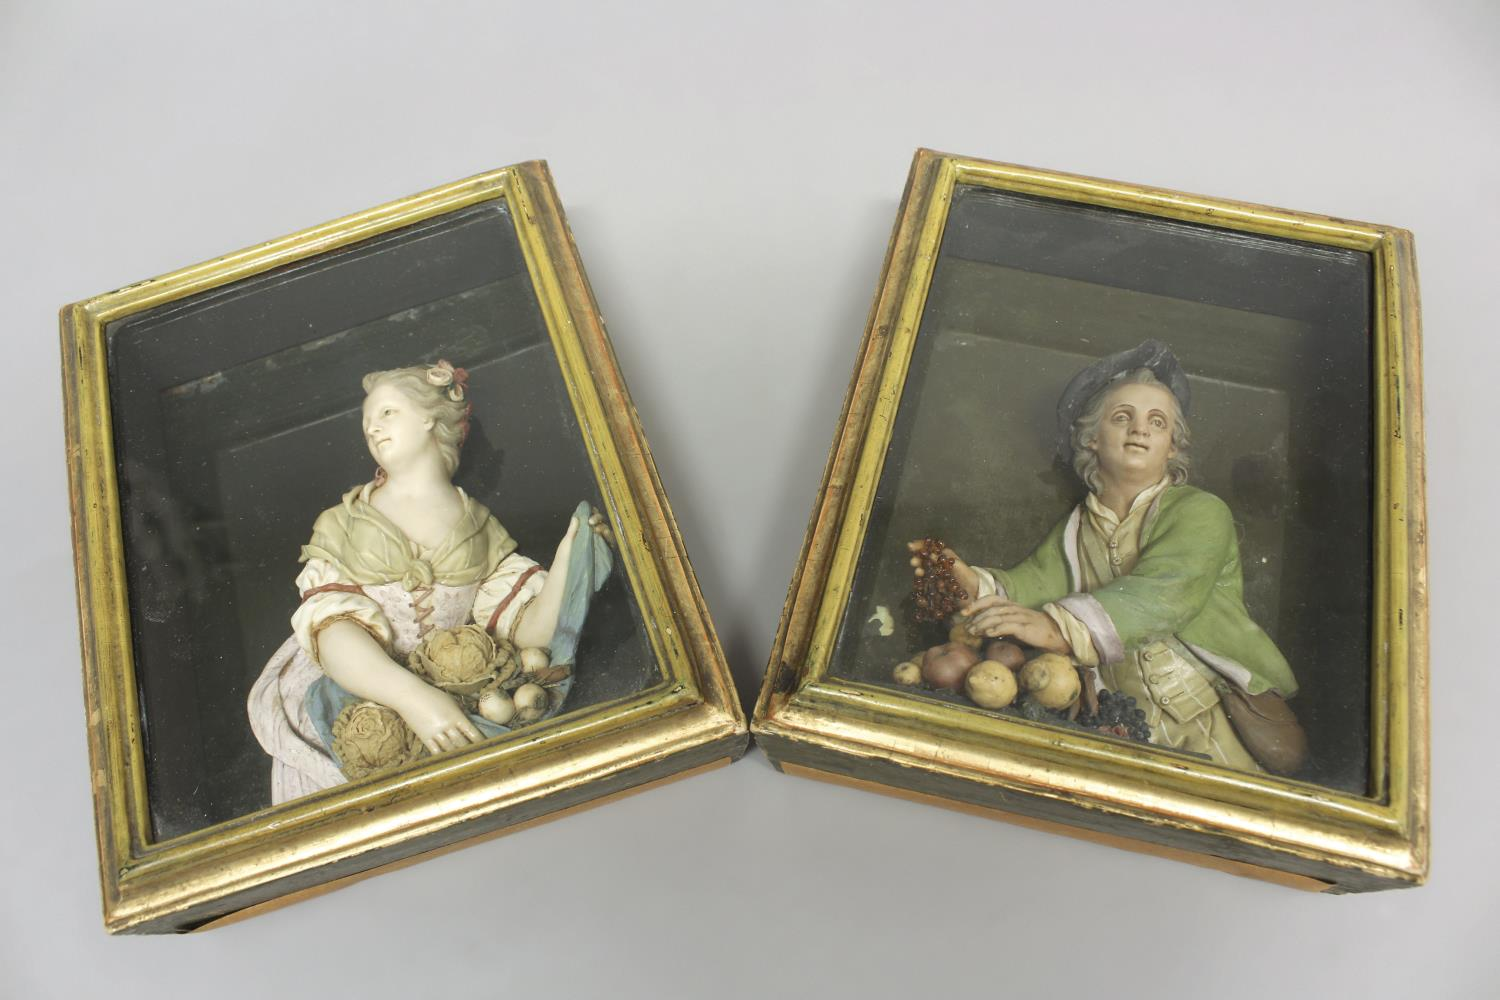 BERNARD CASPAR HARDY (1726-1819): PAIR OF RELIEF SCULPTURES. A pair of late 18th or early 19th